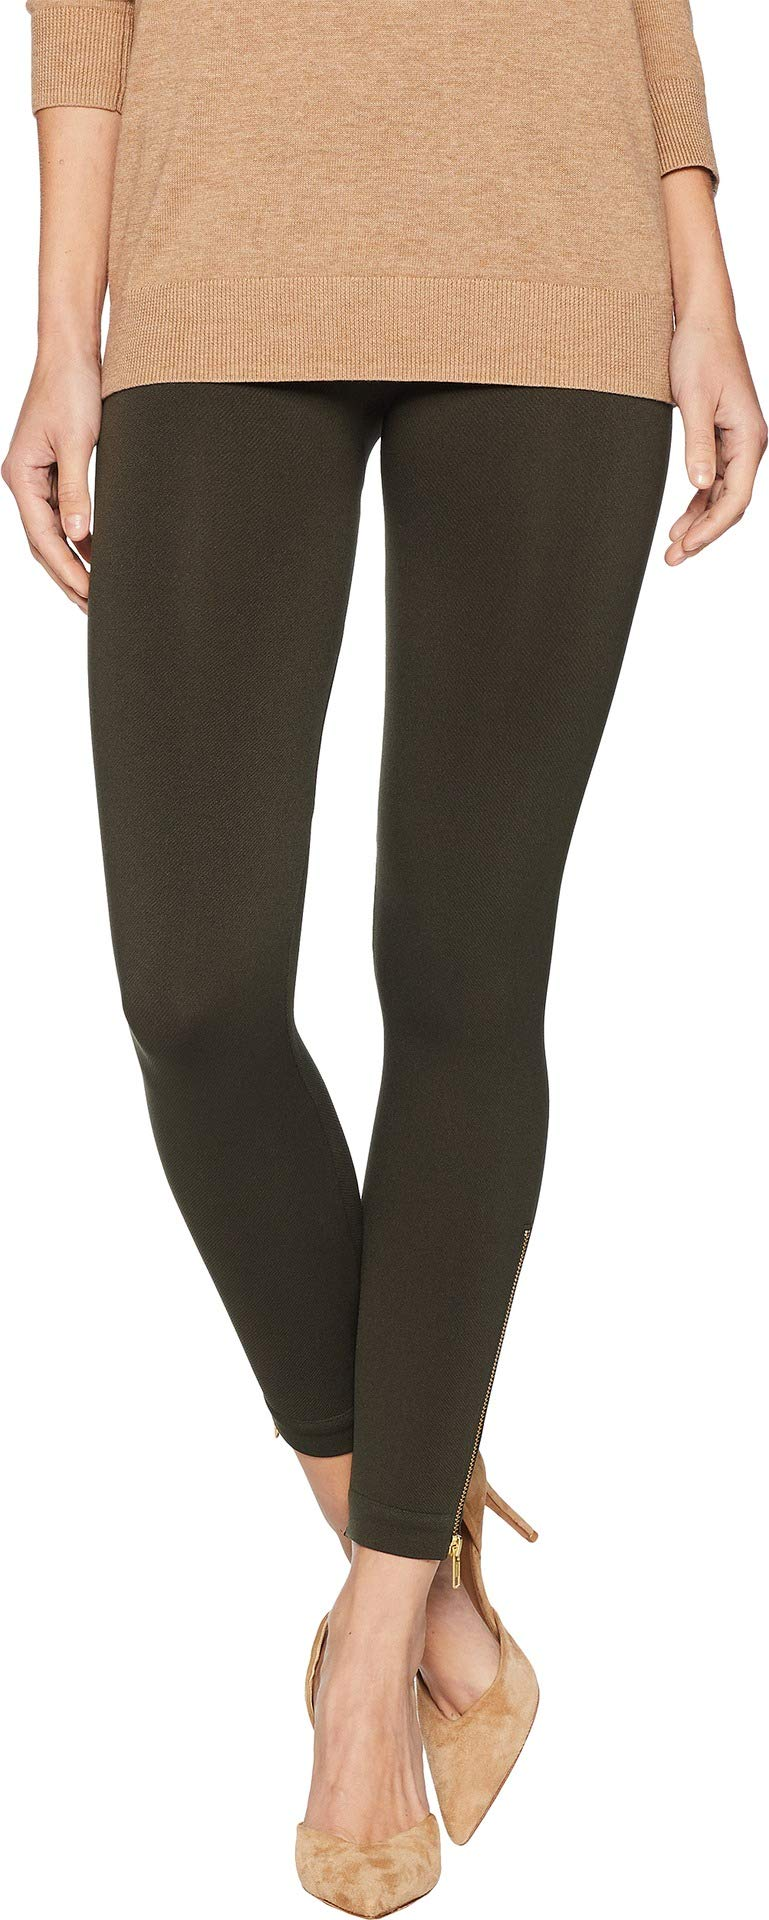 SPANX Women's Look at Me Now Seamless Side Zip Leggings Deep Olive X-Large